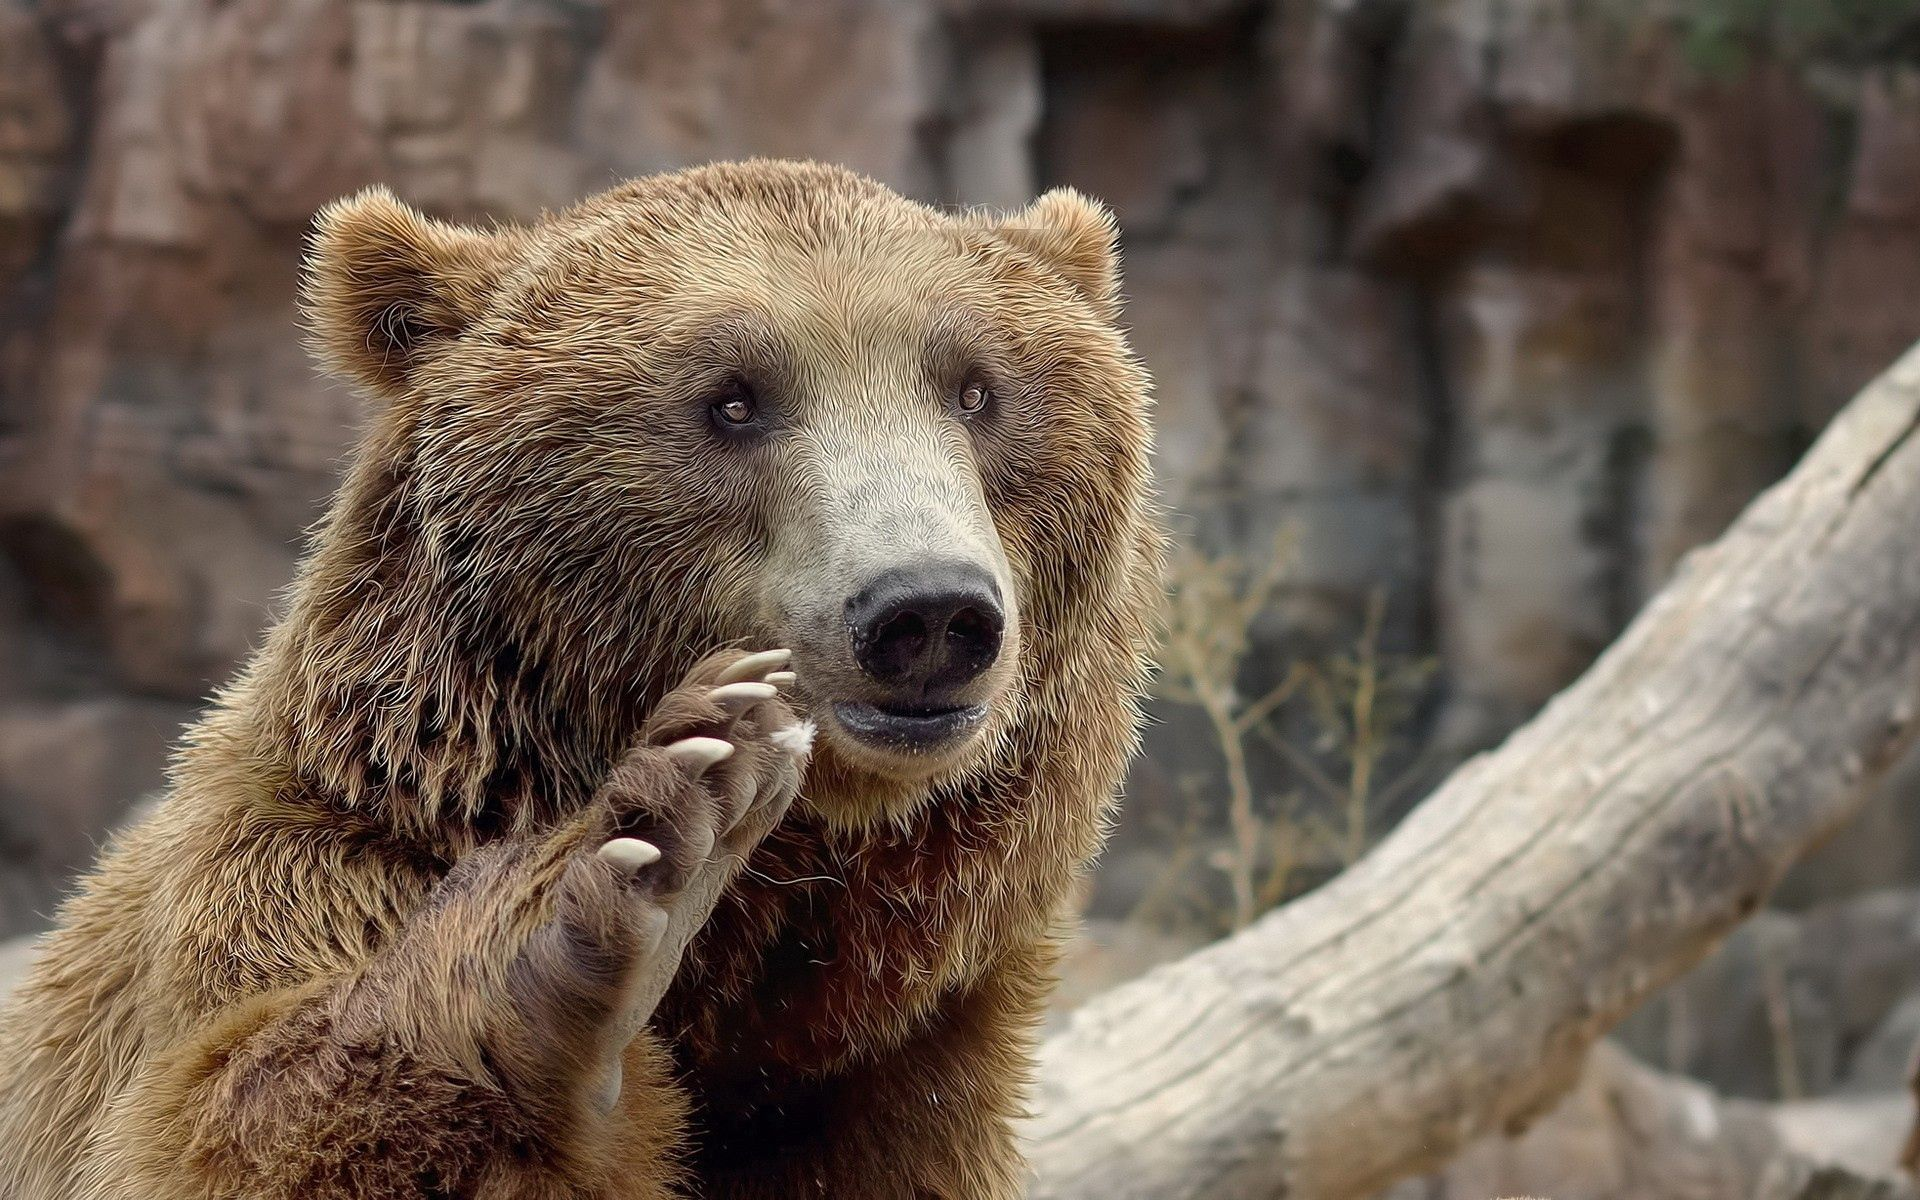 65281 download wallpaper Animals, Bear, Muzzle, Paw, Sight, Opinion, Gesture screensavers and pictures for free